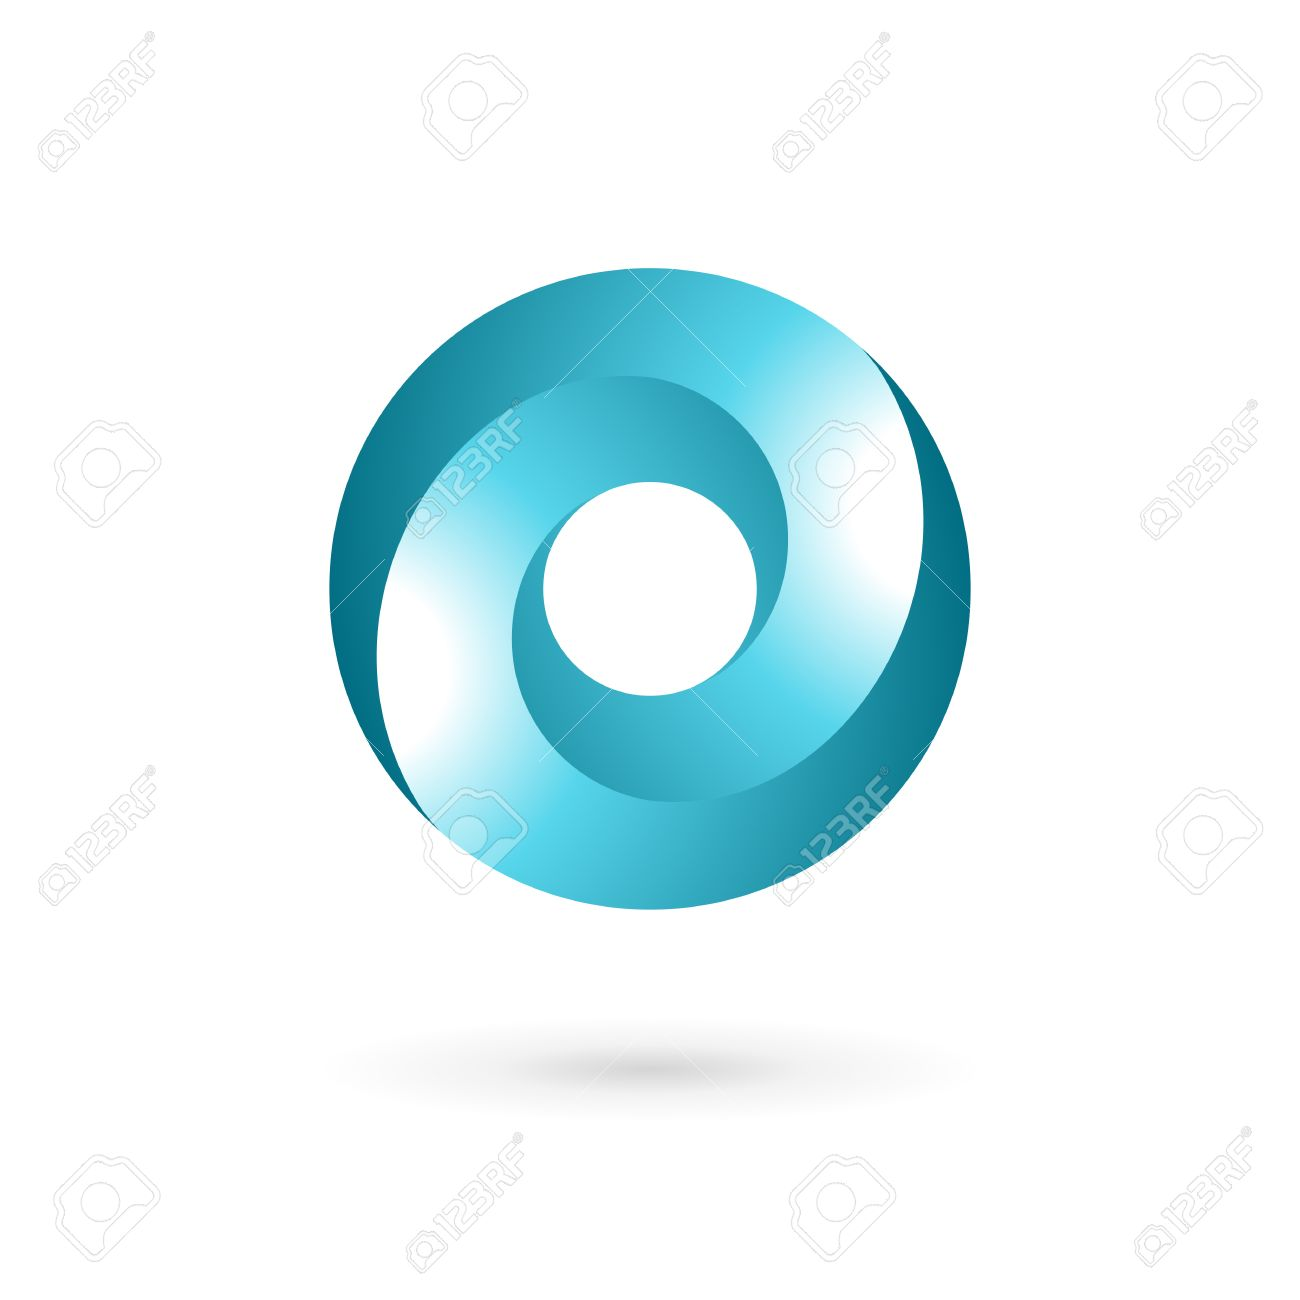 Letter O Template   Letter O Icon Design Template Elements